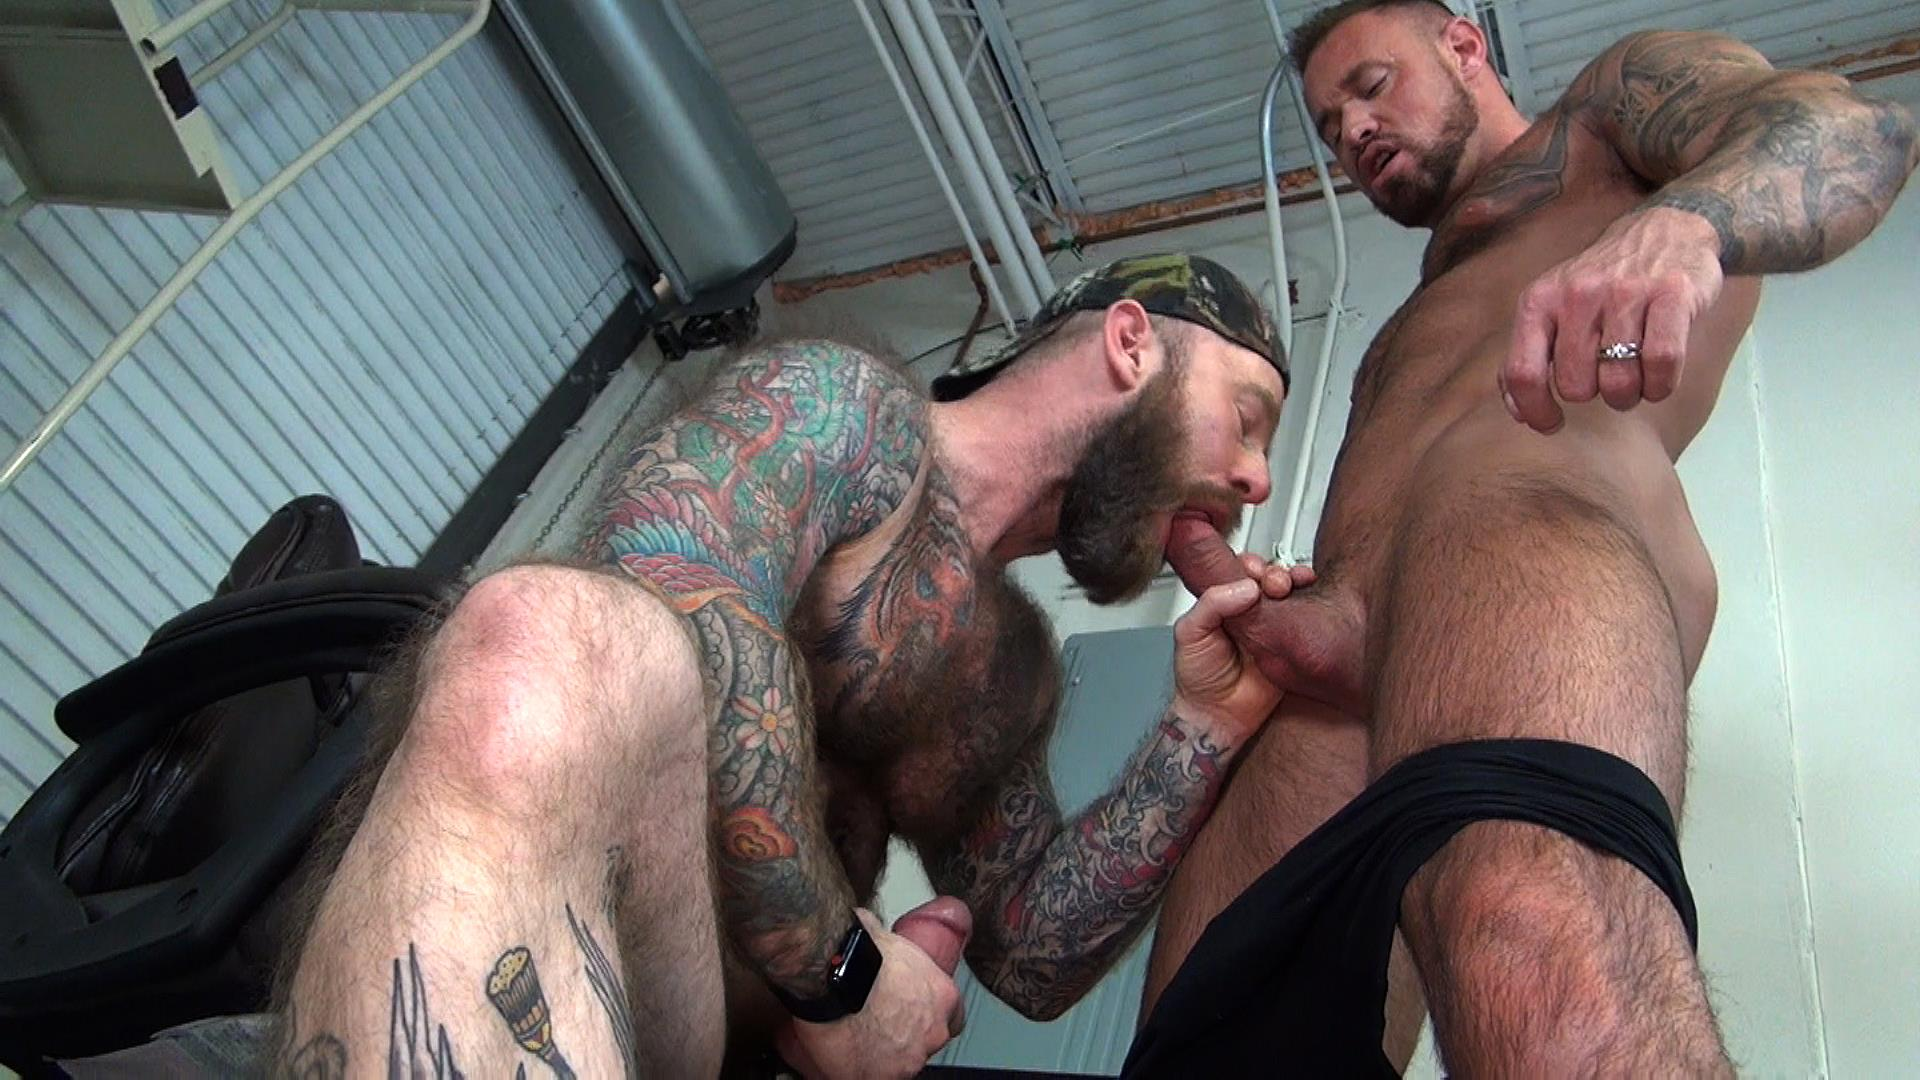 Raw-Fuck-Club-Jack-Dixon-and-Michael-Roman-Hairy-Muscle-Daddy-Bareback-Gay-Sex-Video-09 Taking A Raw Ride On Jack Dixon's Big Fat Daddy Cock